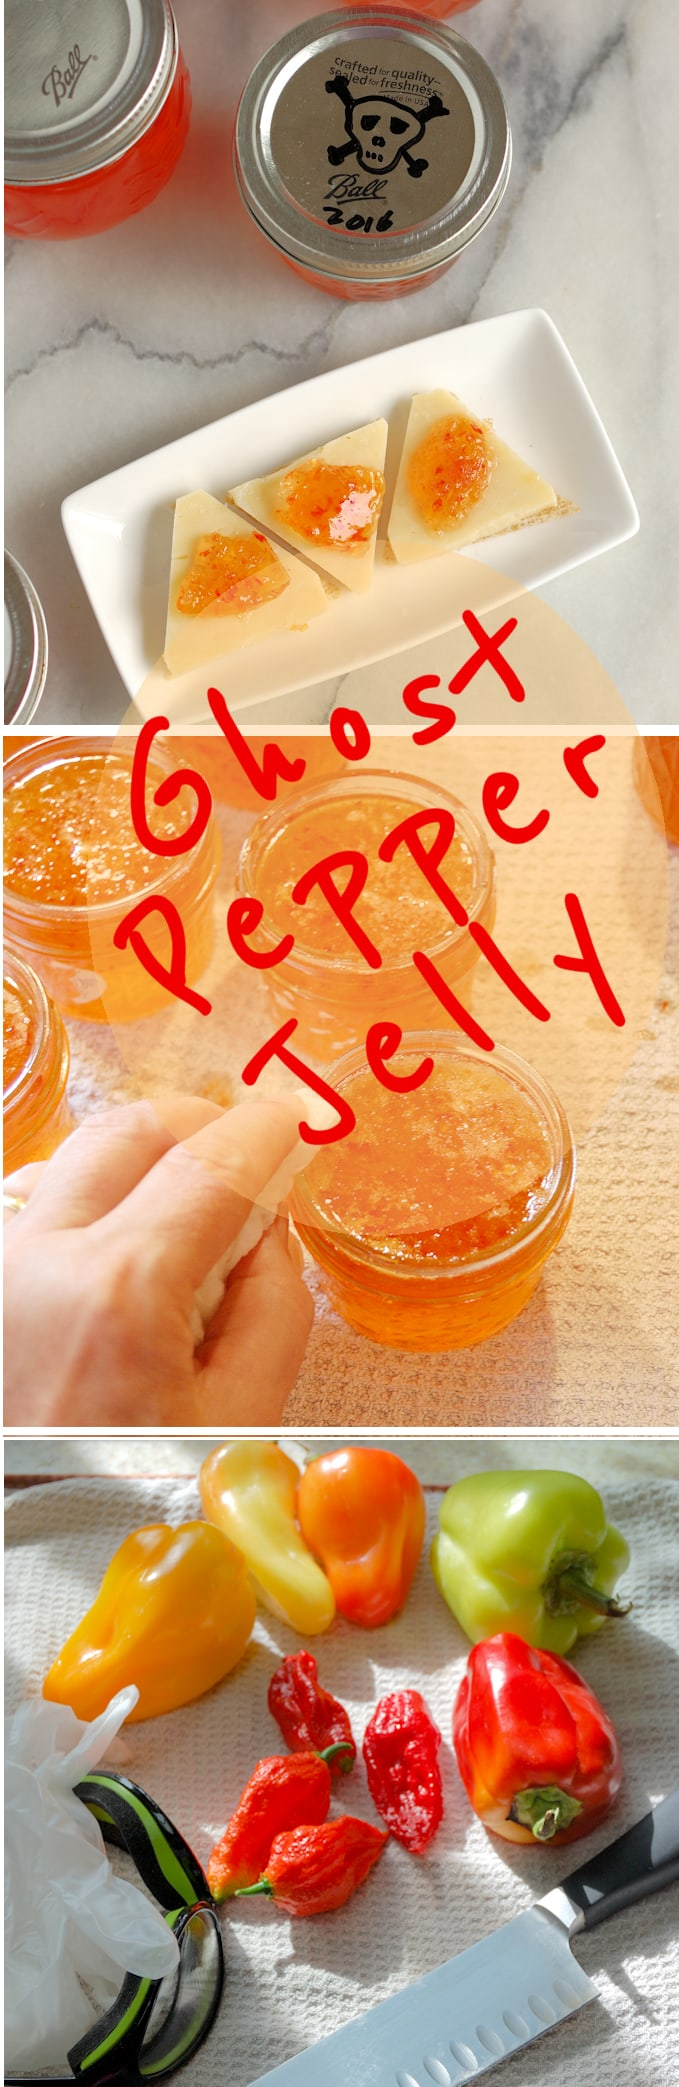 Sweet-Hot Ghost Pepper Jelly is easy to make and it's not THAT hot. #spicy #easy #sweet #best #canning #preserves #homemade #fresh